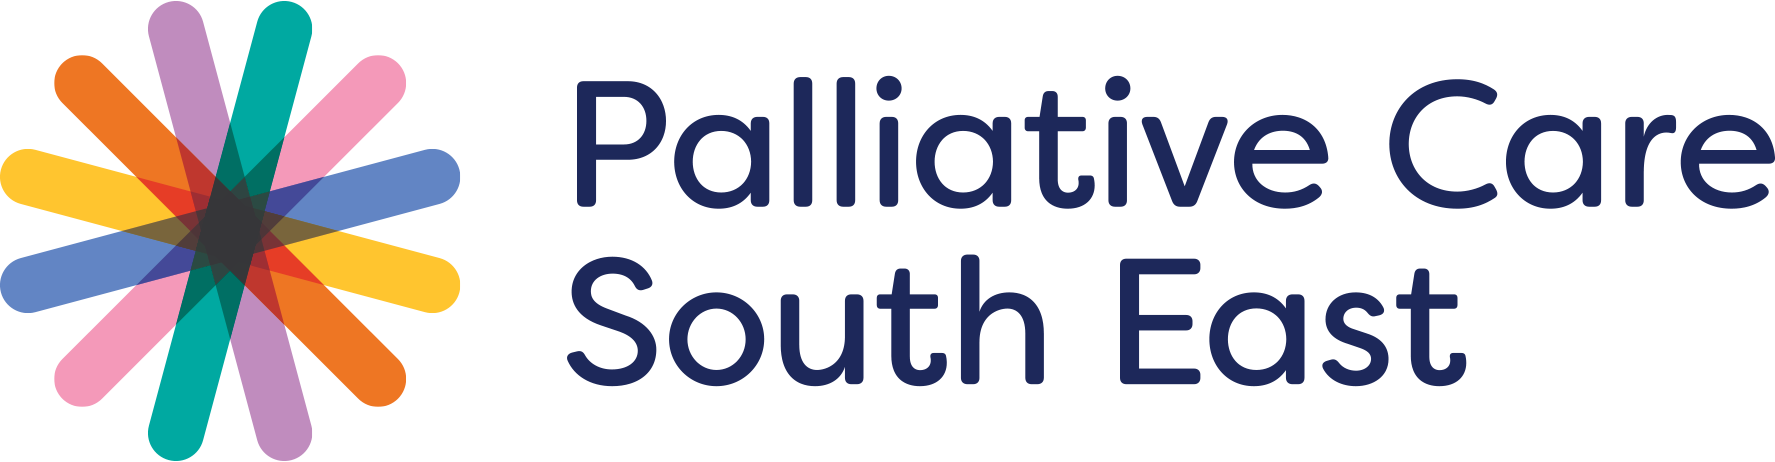 Palliative Care South East